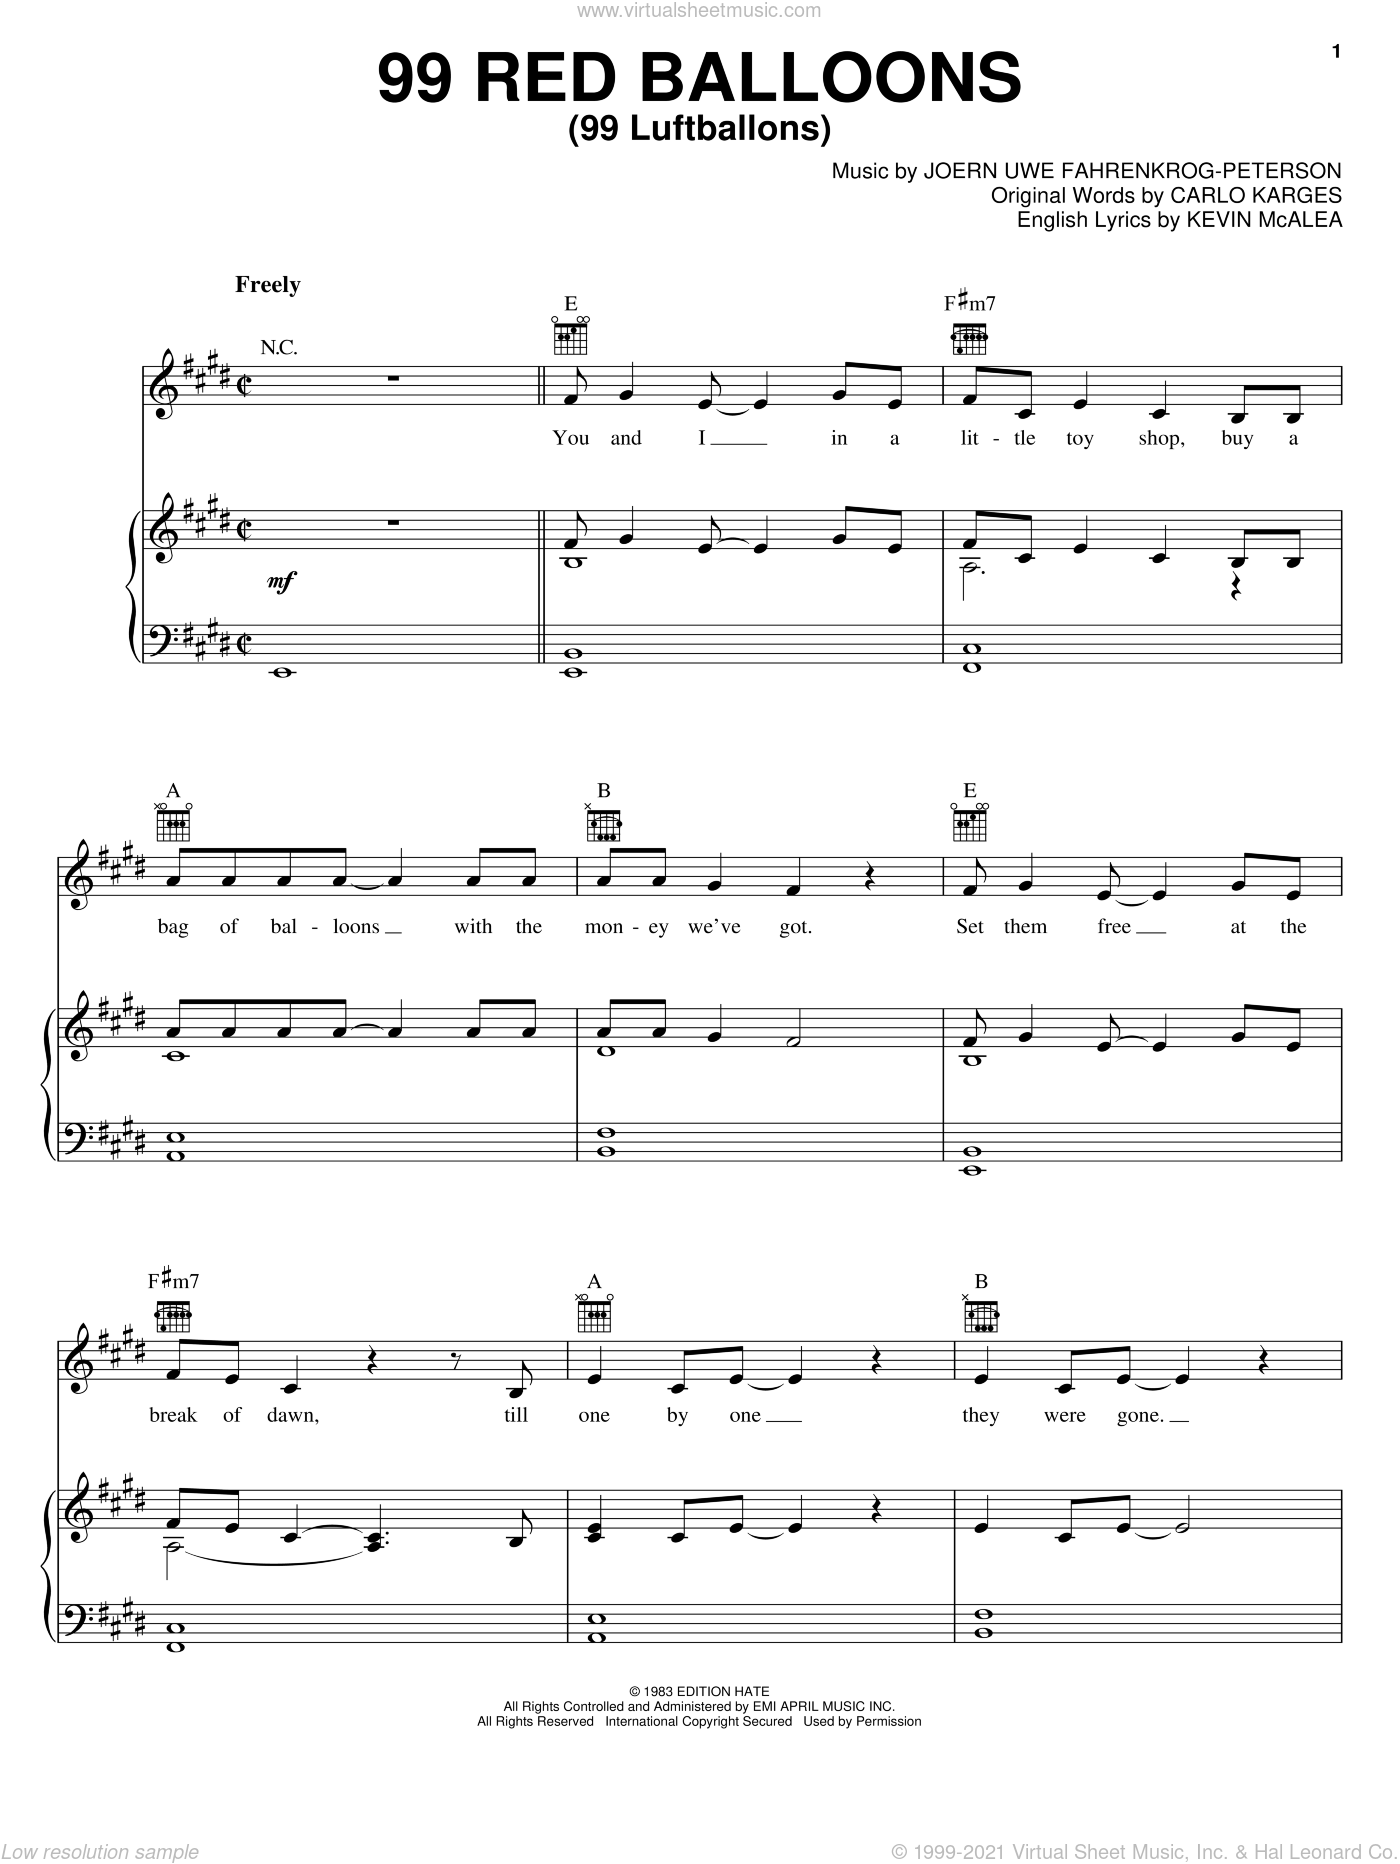 99 Red Balloons (99 Luftballons) sheet music for voice, piano or guitar by Nena, Carlo Karges, Joern Uwe Fahrenkrog-Peterson and Kevin McAlea, intermediate skill level